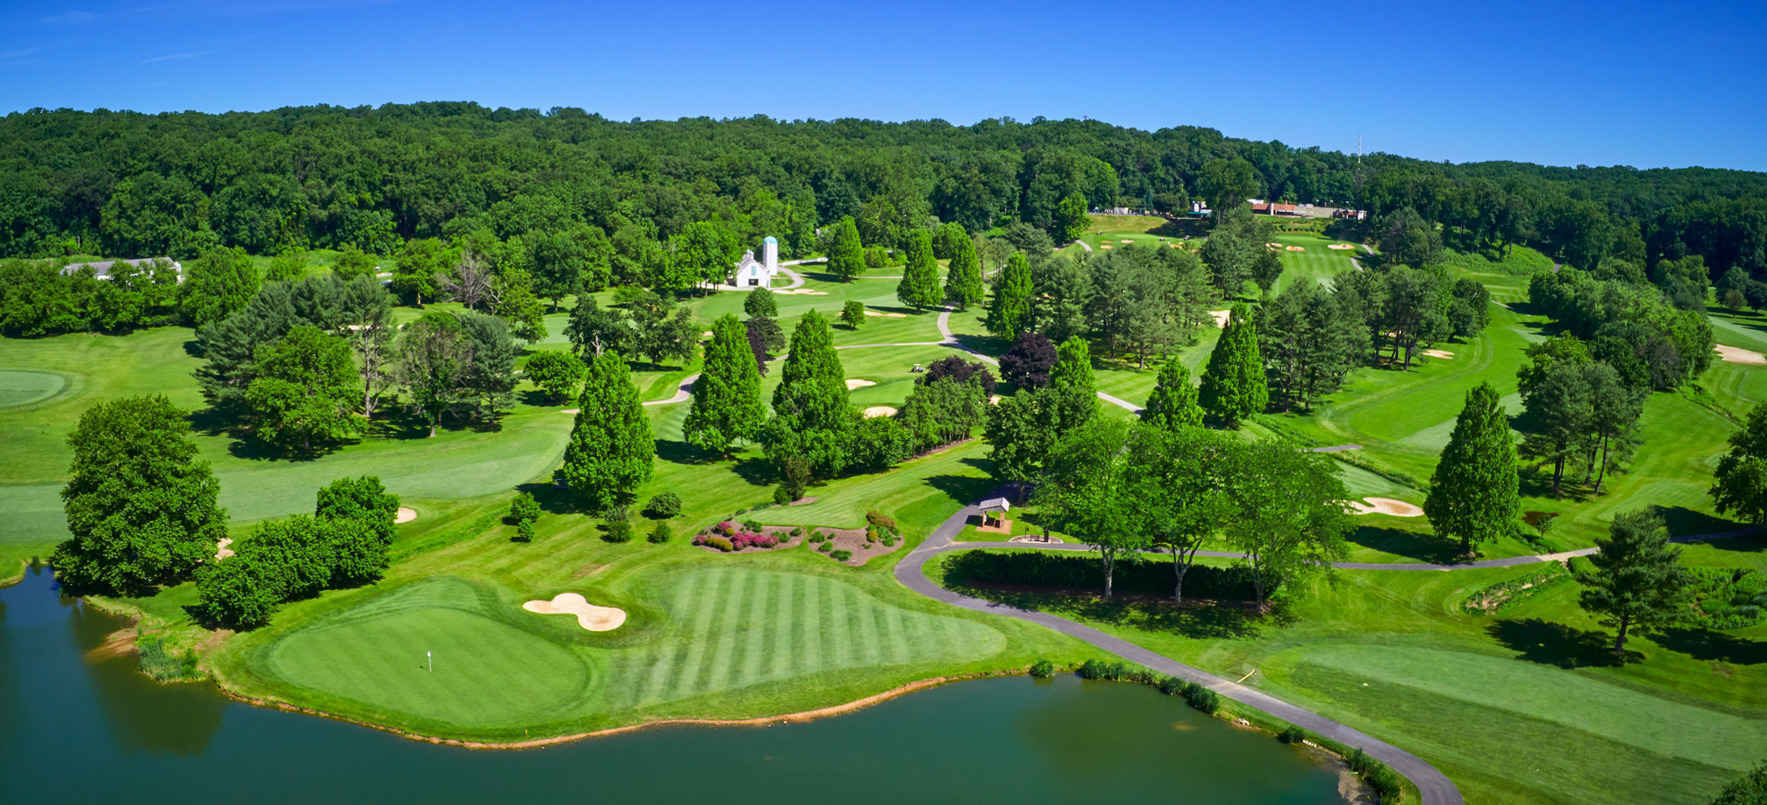 25th Annual Franciscan Center Charity Golf Tournament image